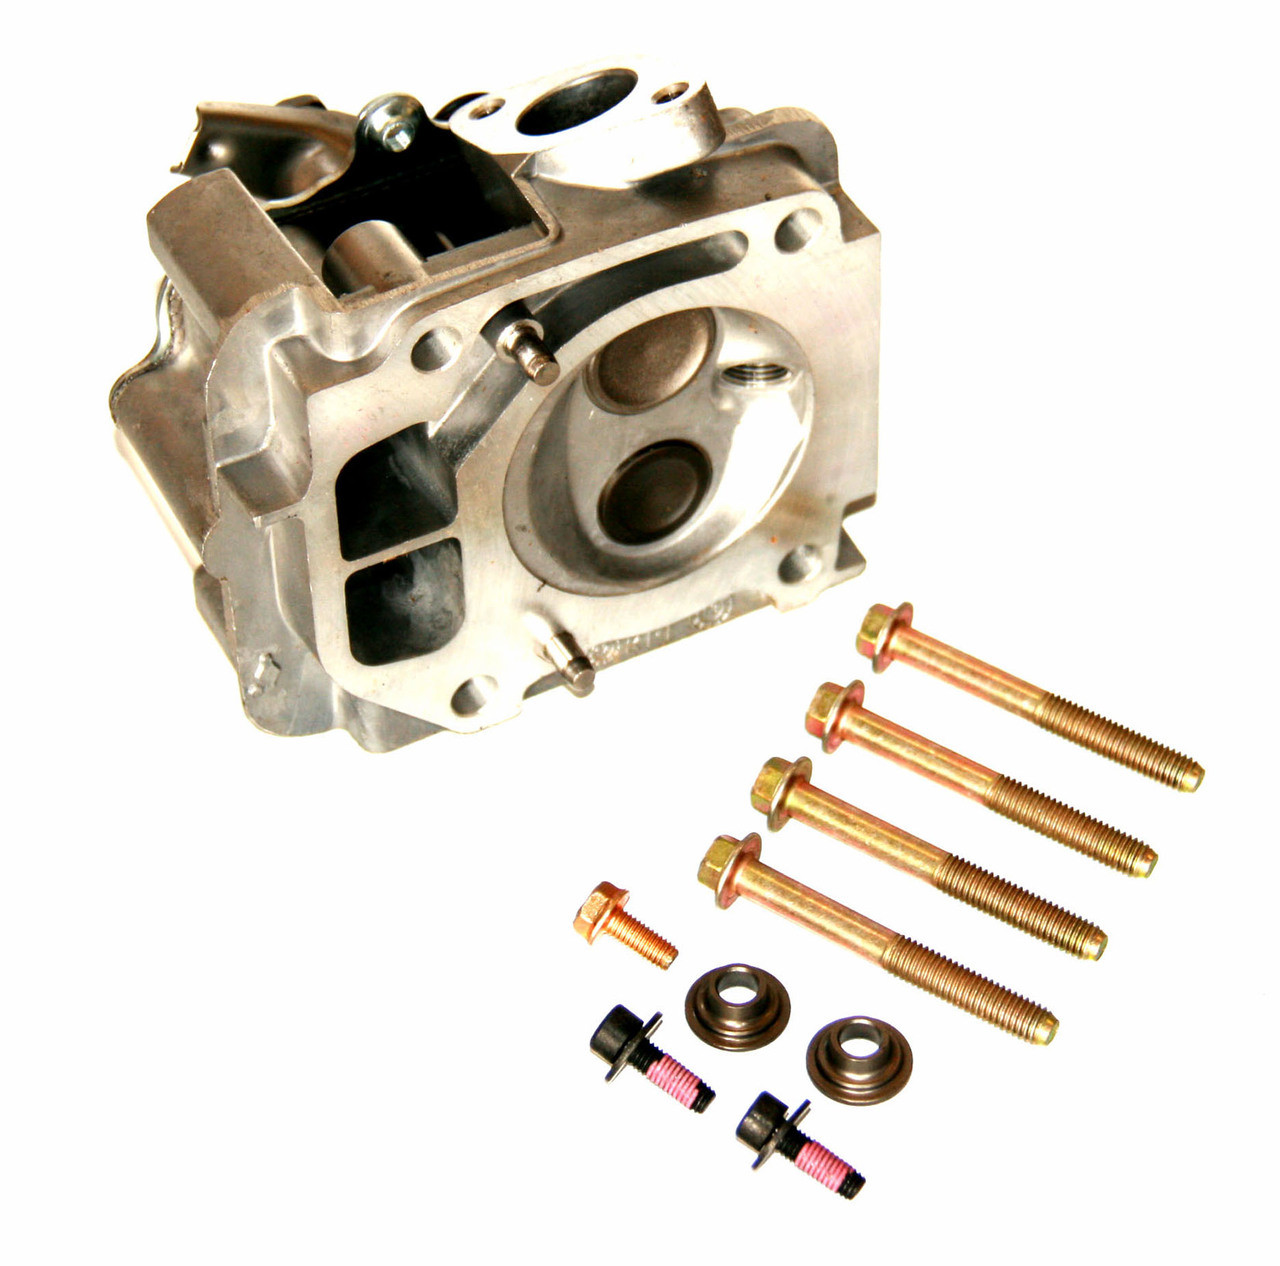 #22 : P/N EBL1009: LO206 Cylinder Head Assembly